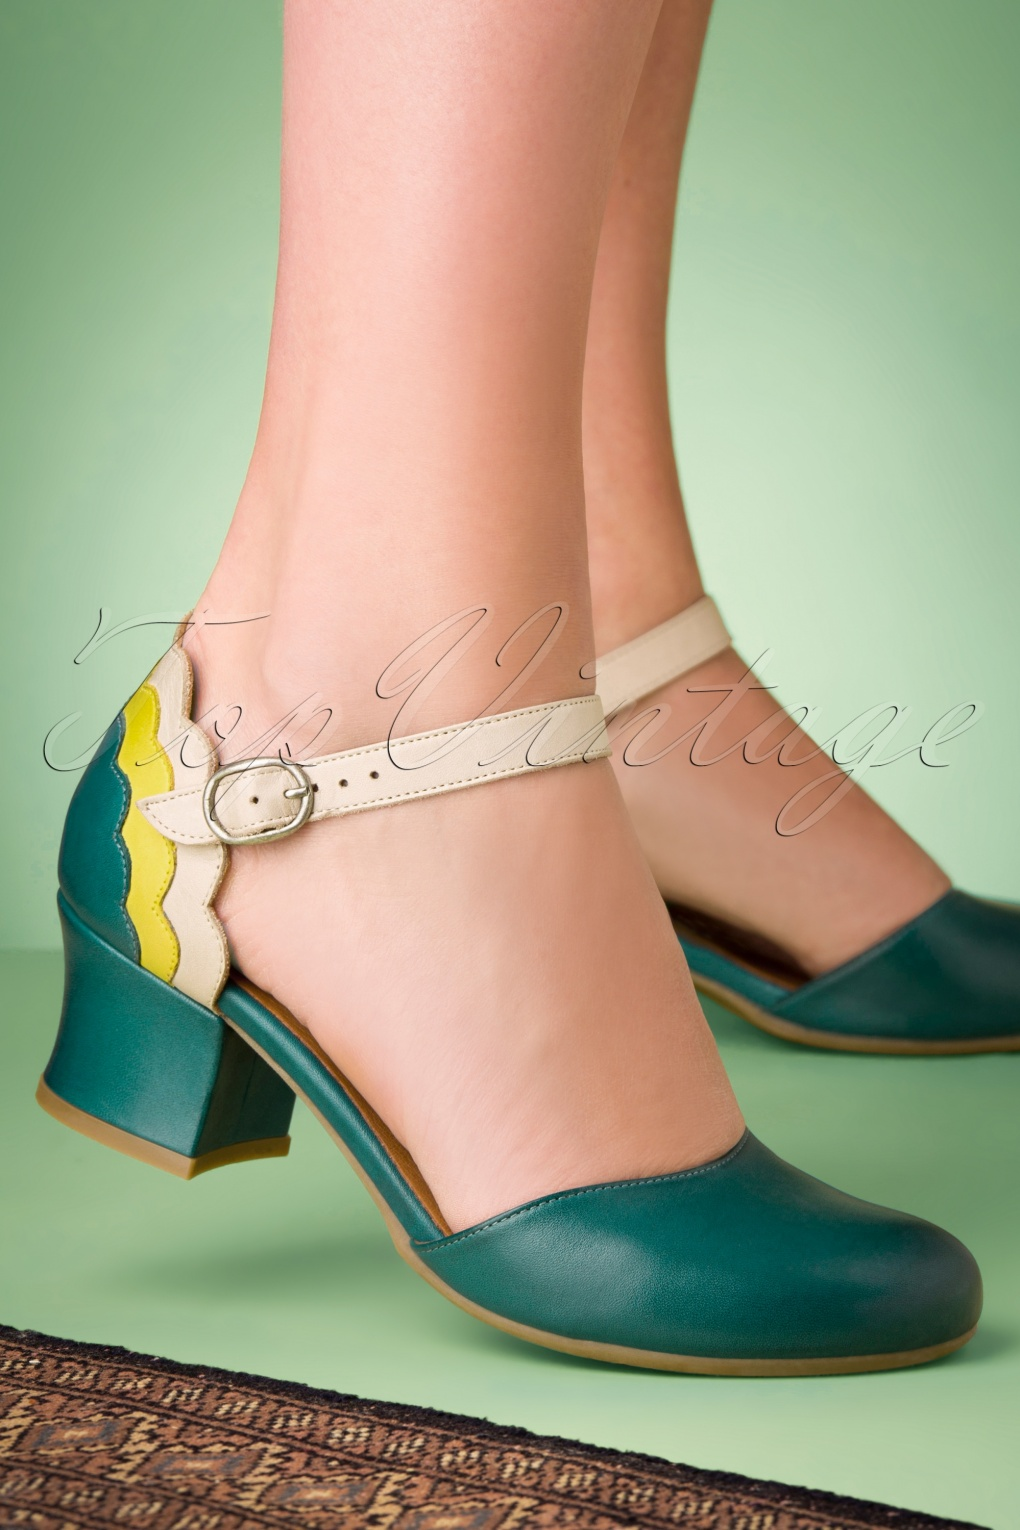 1960s Style Clothing & 60s Fashion 60s Flaunt Leather Pumps in Turquoise £19.95 AT vintagedancer.com